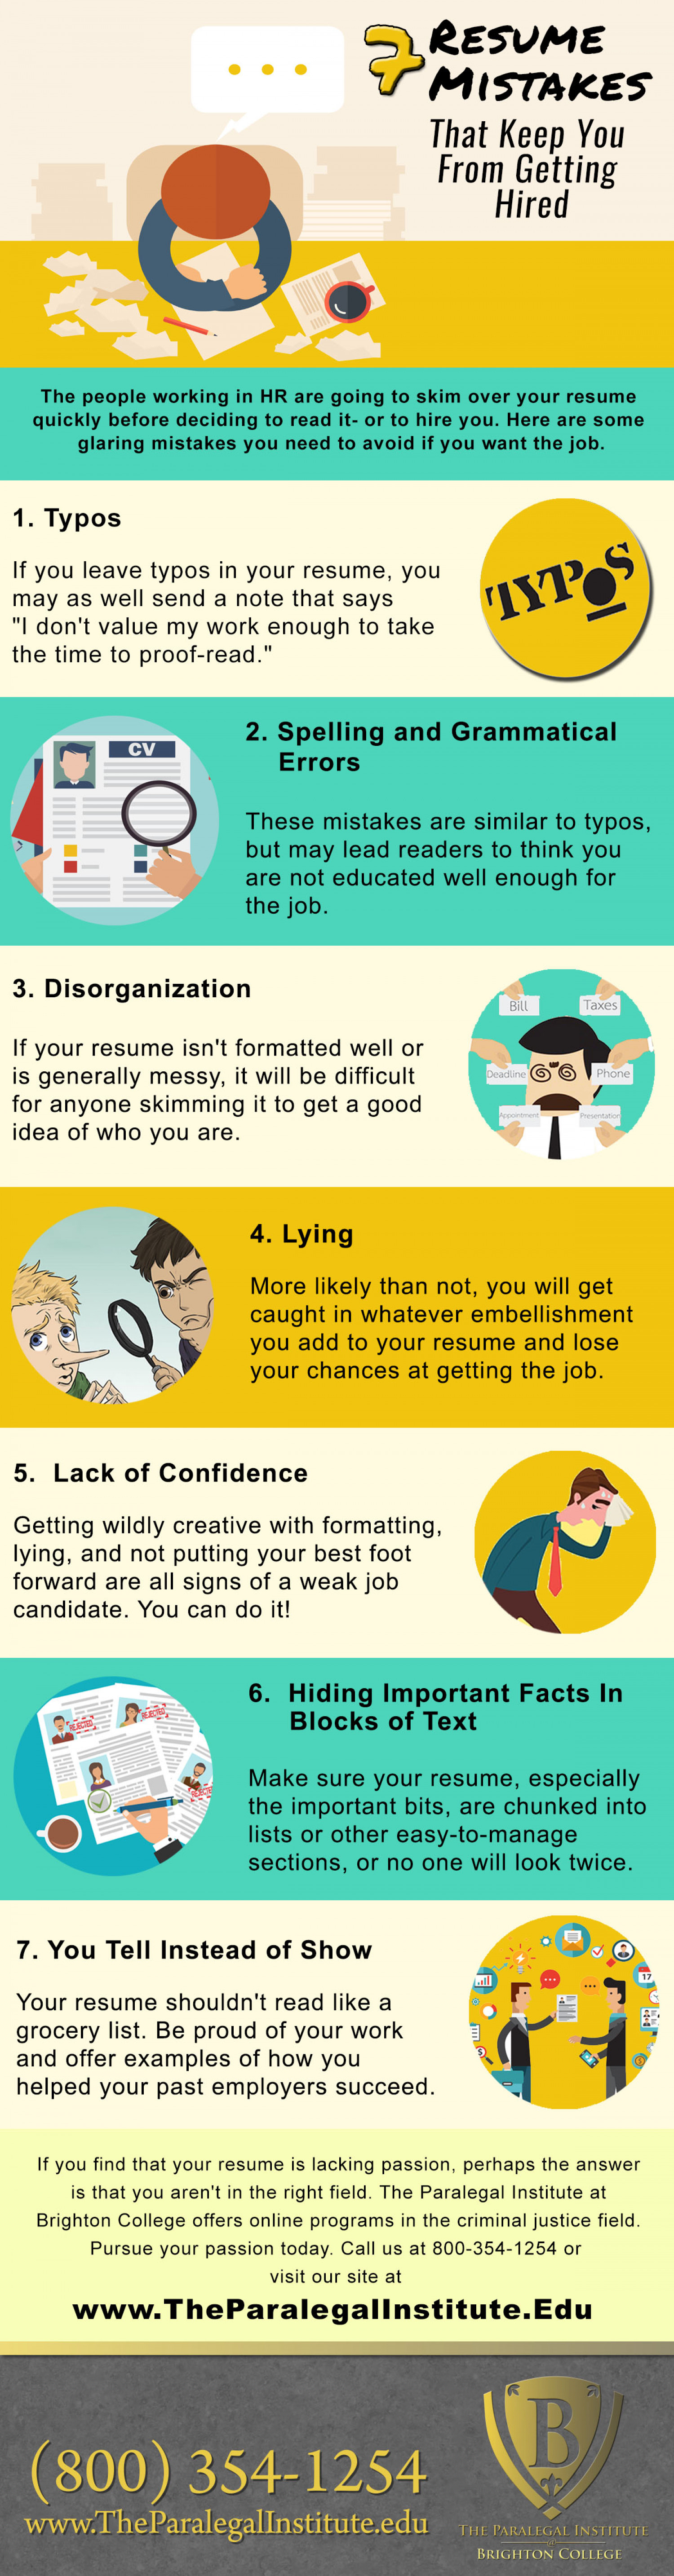 7 Resume Mistakes That Keep You From Getting Hired Infographic